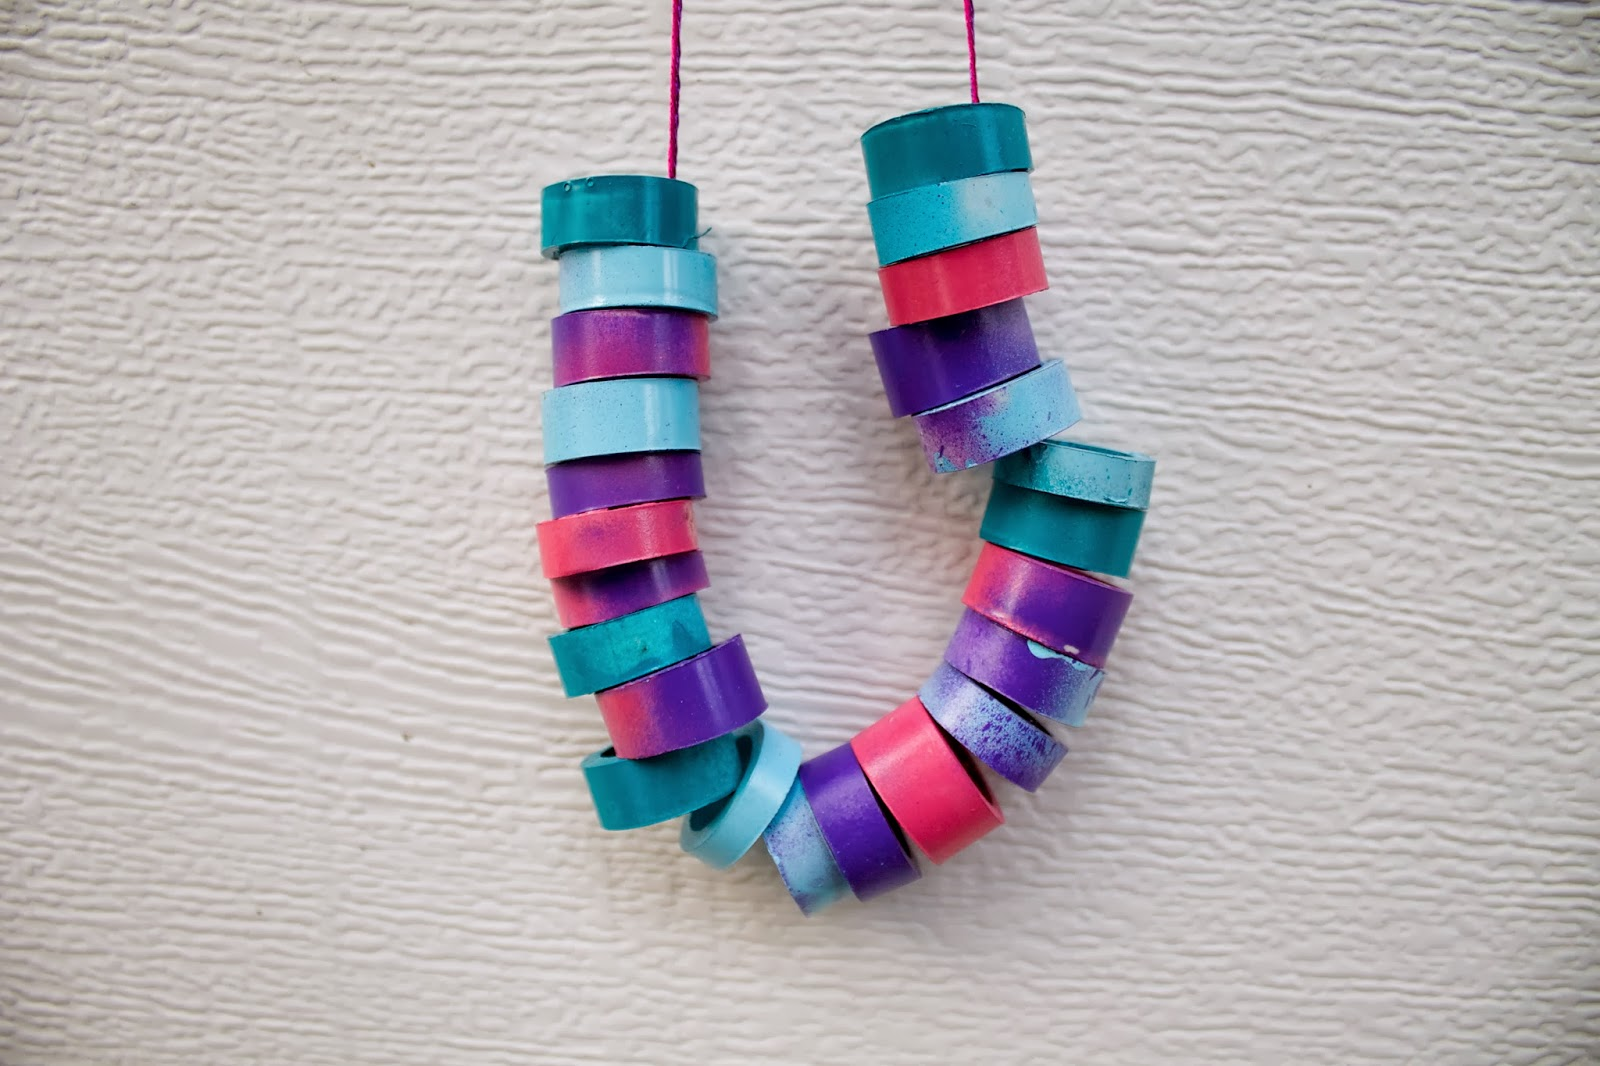 Sowdering about day 30 pvc pipe extra easy crafts for Pvc pipe crafts